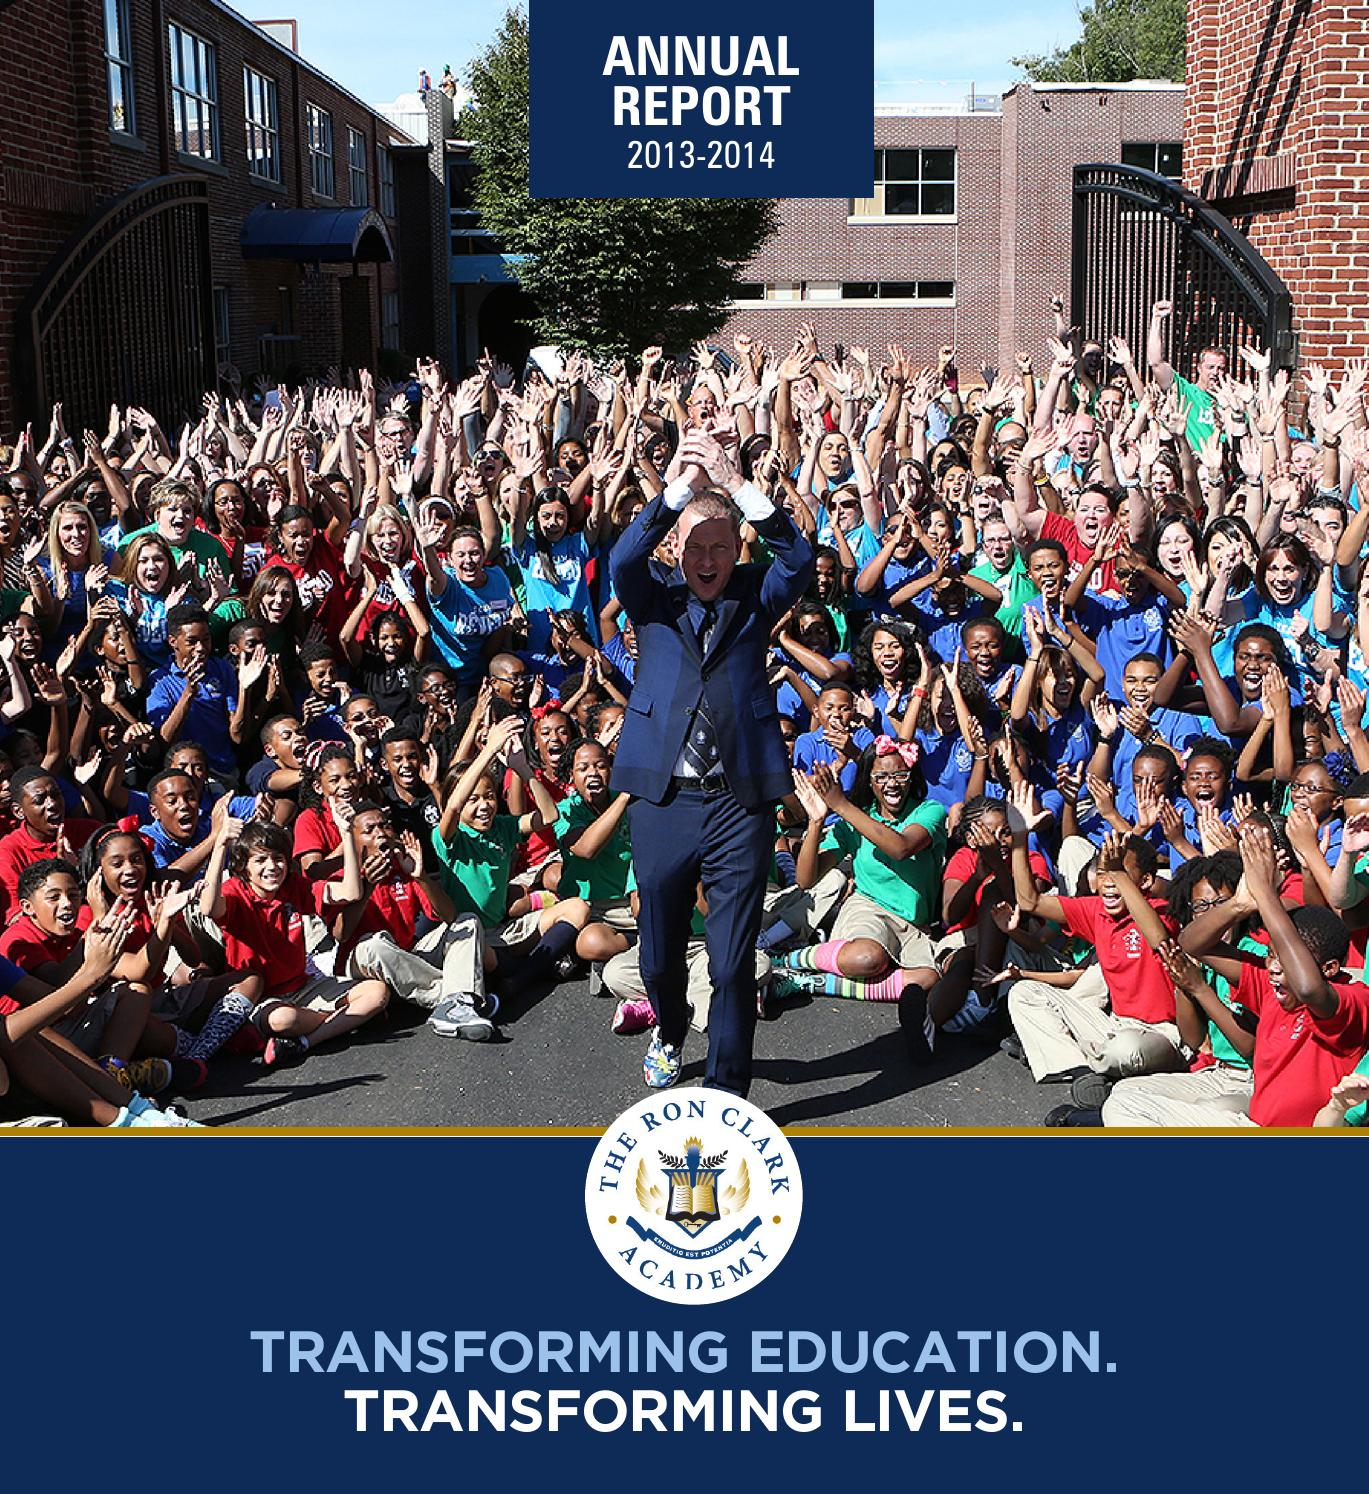 RCA Annual Report 2014 By The Ron Clark Academy (page 1